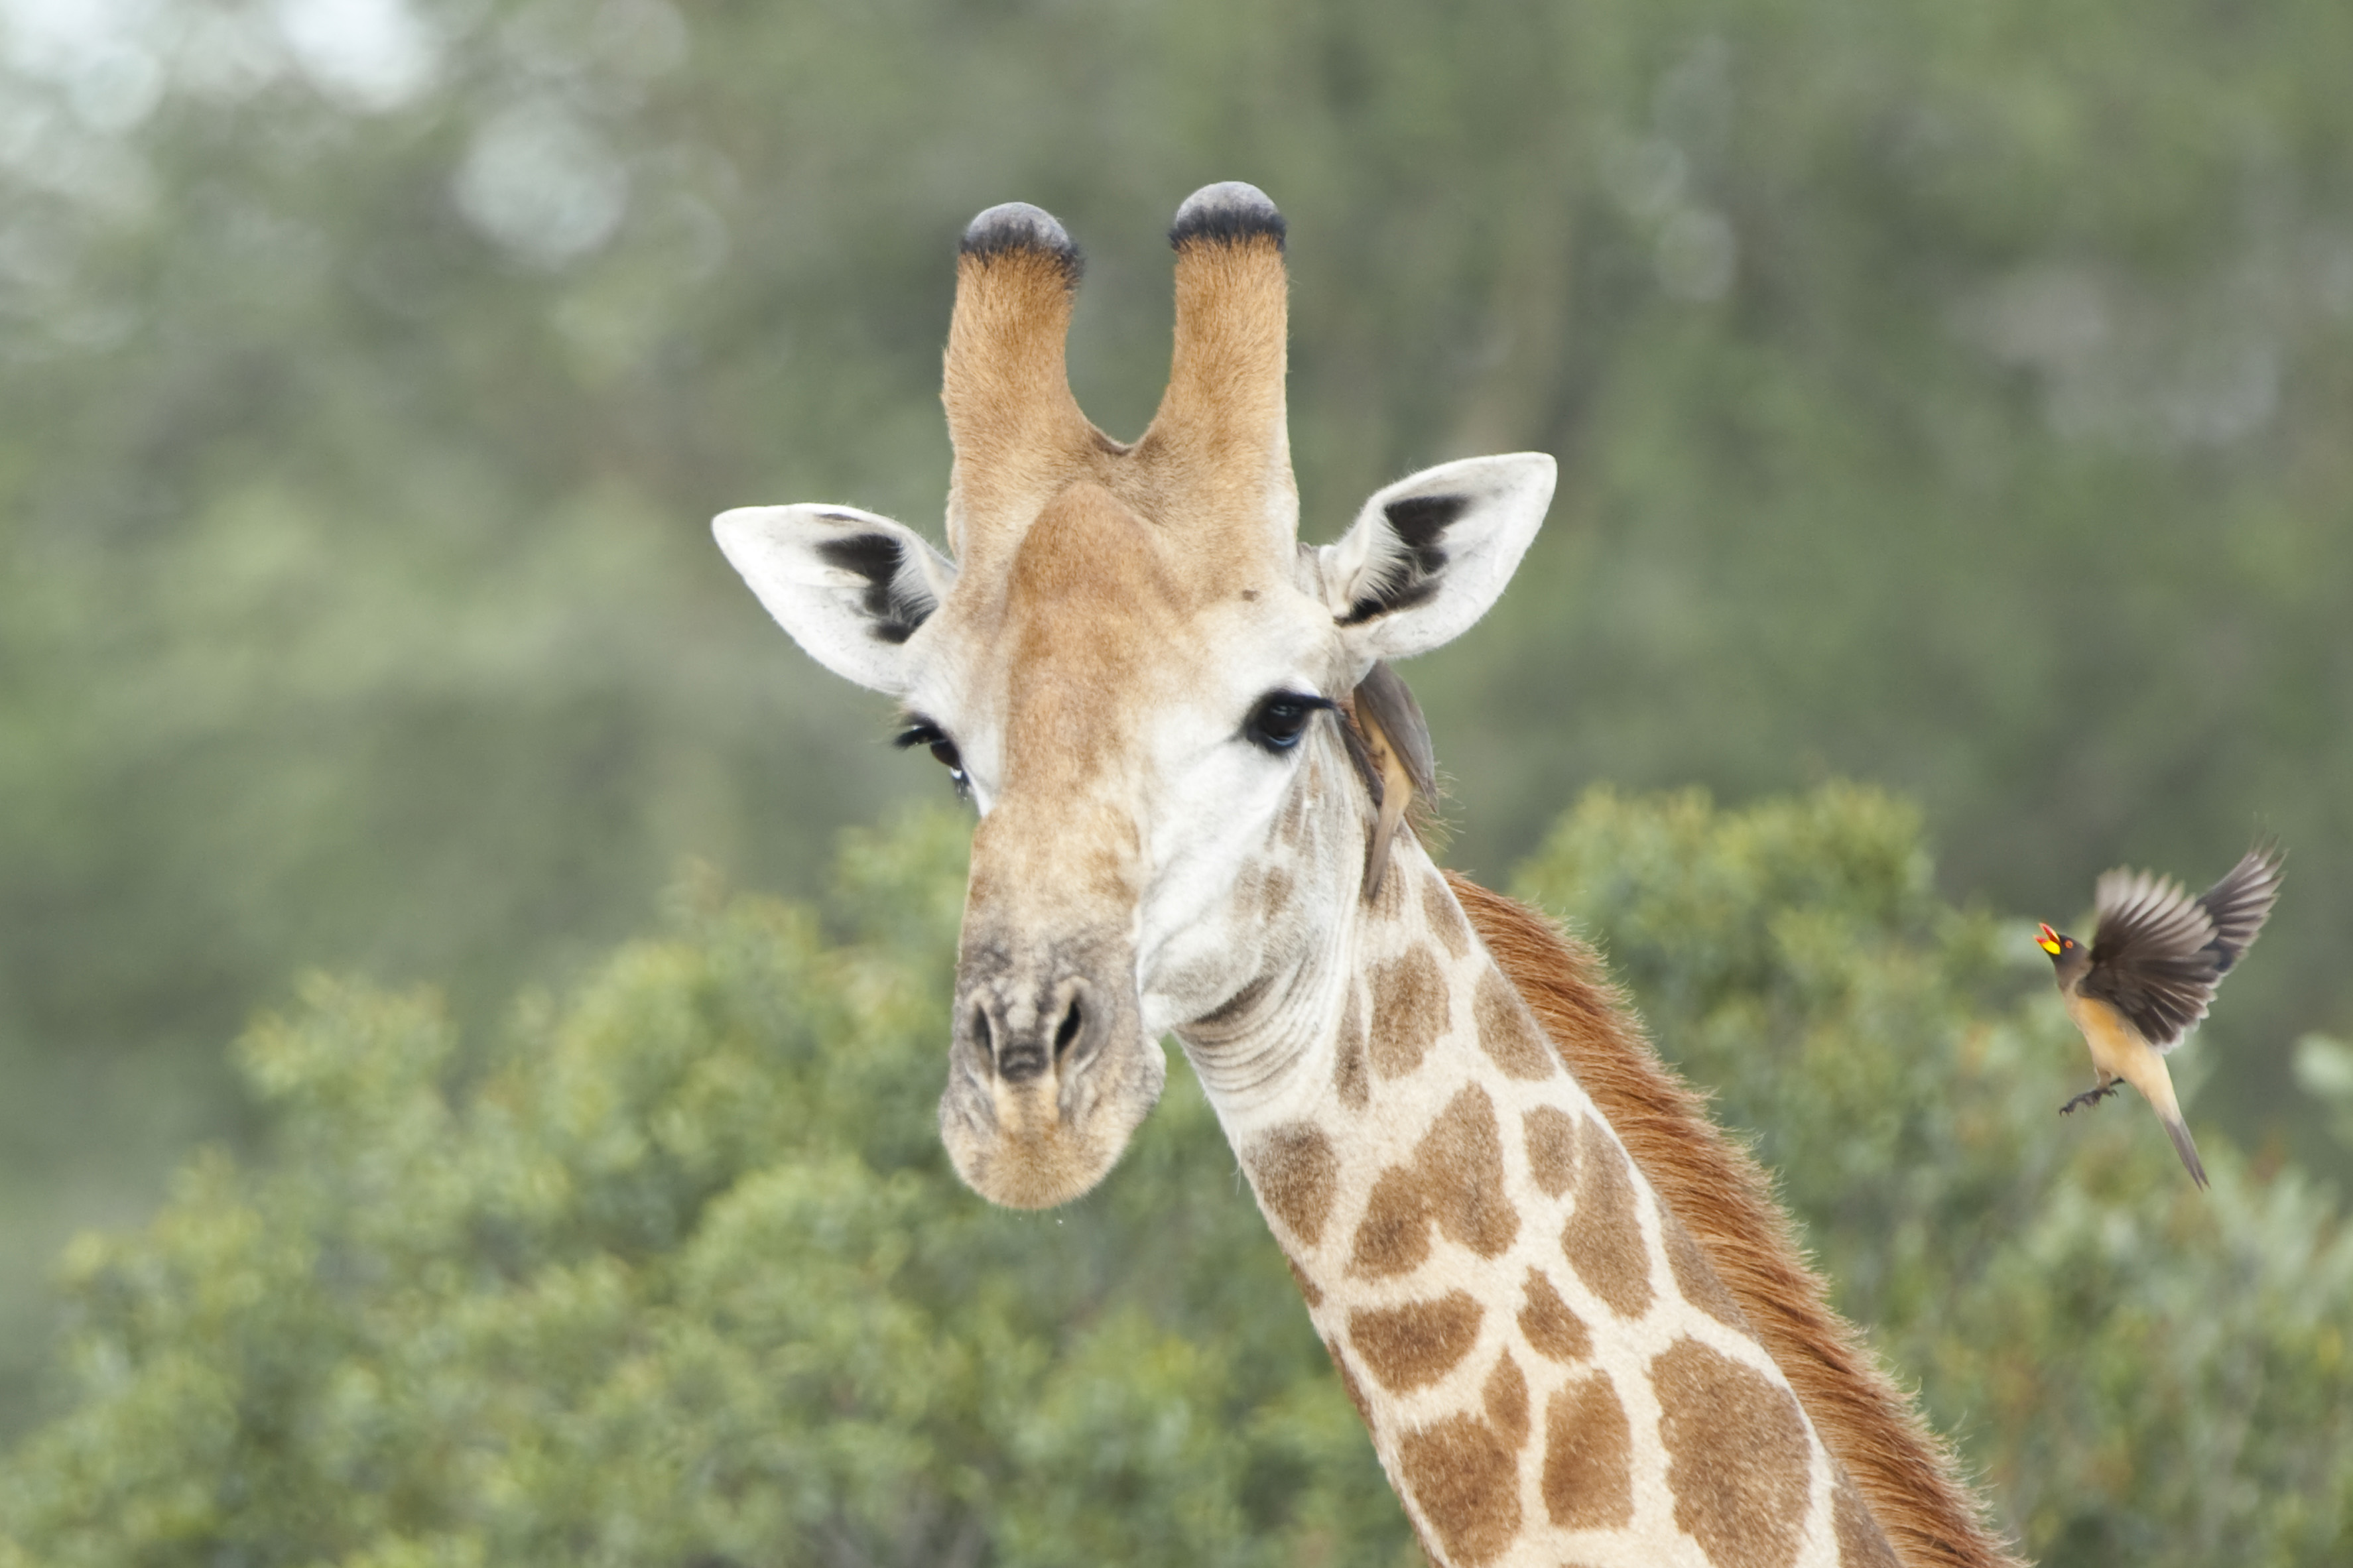 Giraffe with Red-billed Oxpecker I, ZA ©Johannes Ratermann